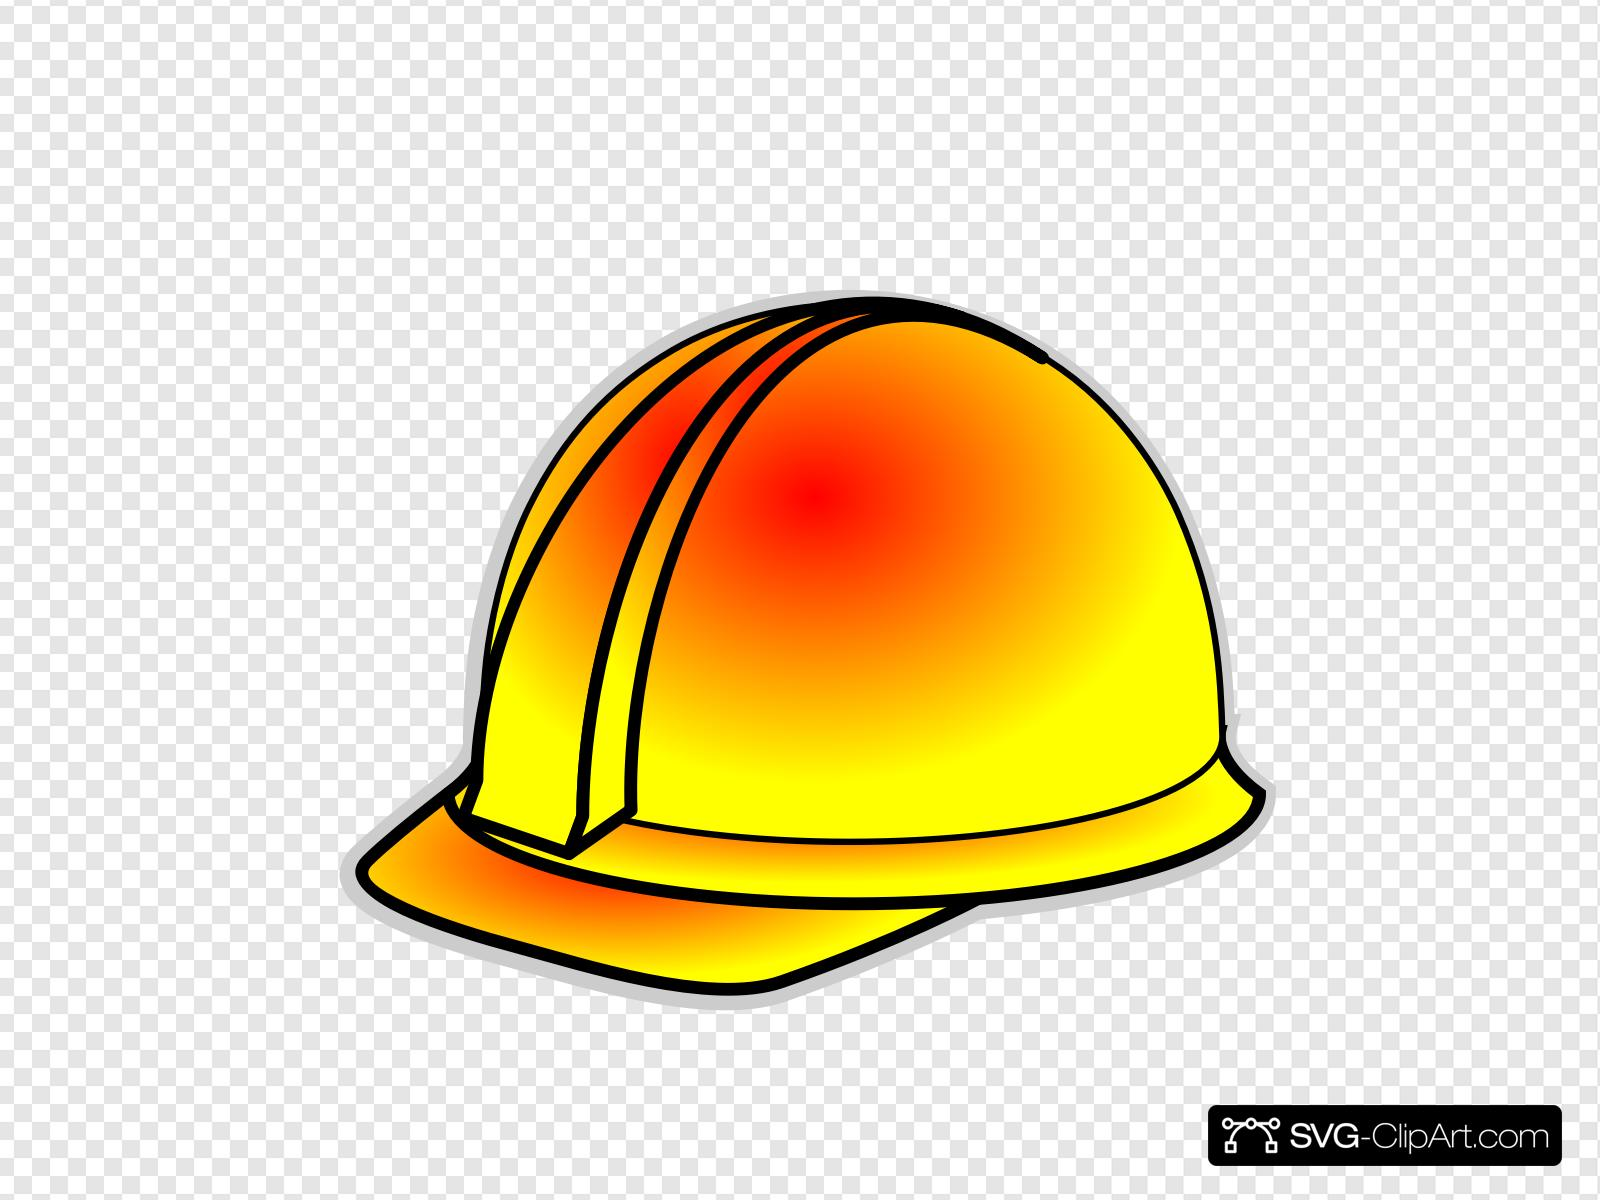 Yellow Hard Hat Clip art, Icon and SVG.